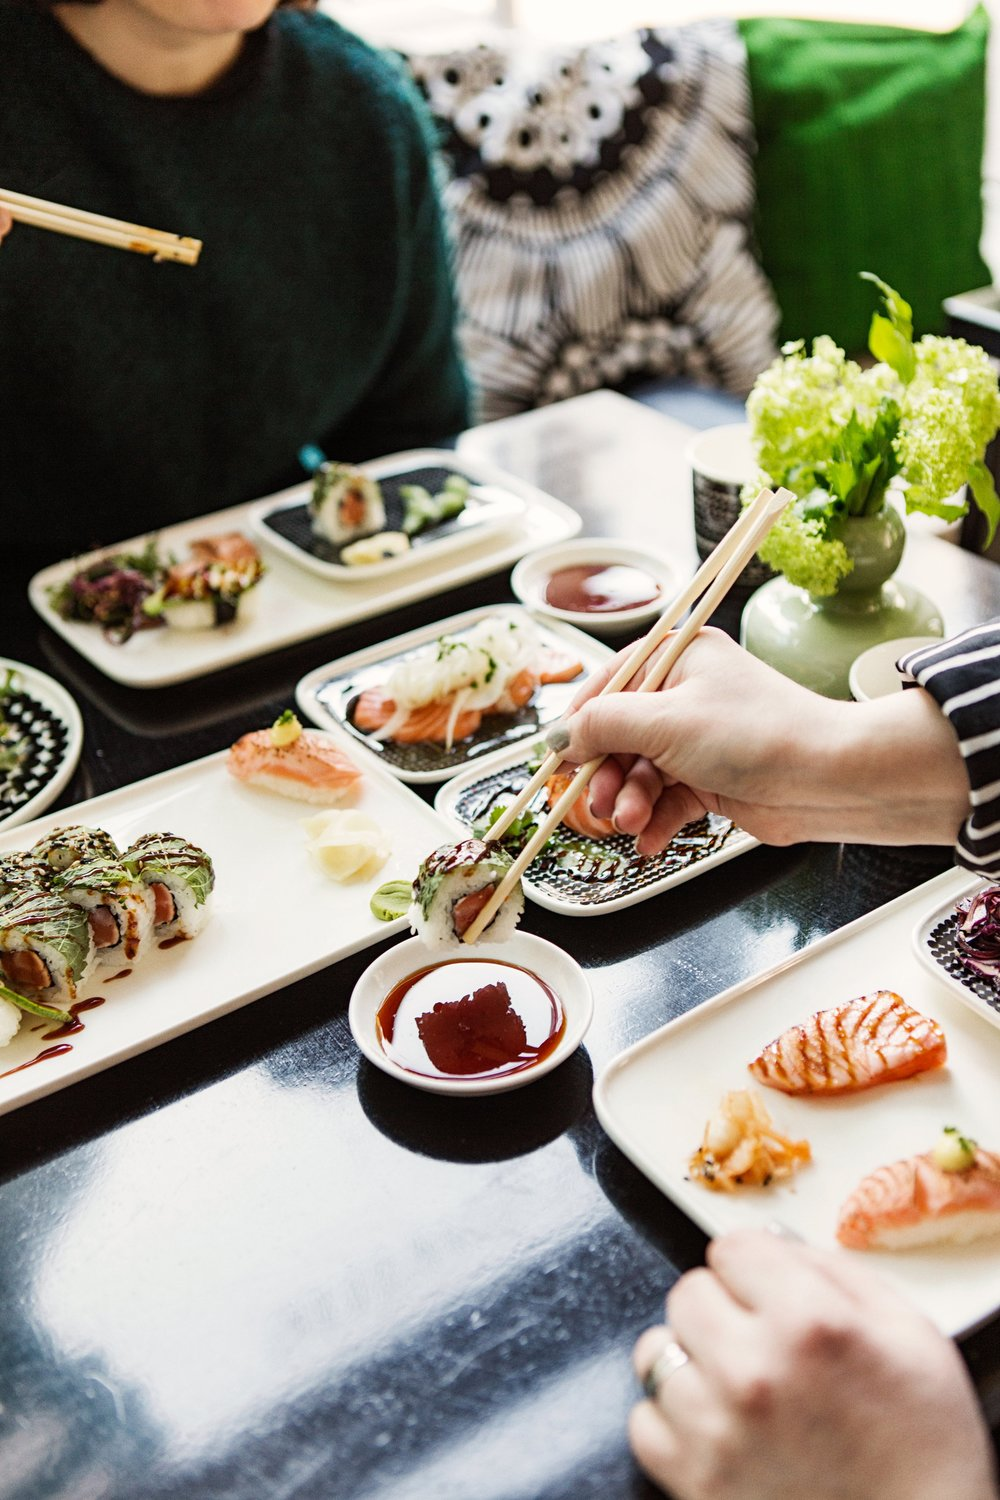 Sushibar+Wine - Sushibar + Wine combines excellent sushi, Scandinavian design and organic wines into an enjoyable experience! Each of our four Sushibar+Wine restaurants represent their distinctive neighborhoods. We serve lunch, dinner and take-away at Uudenmaankatu, Korjaamo, Fredrikinkatu and Citycenter.Visit website